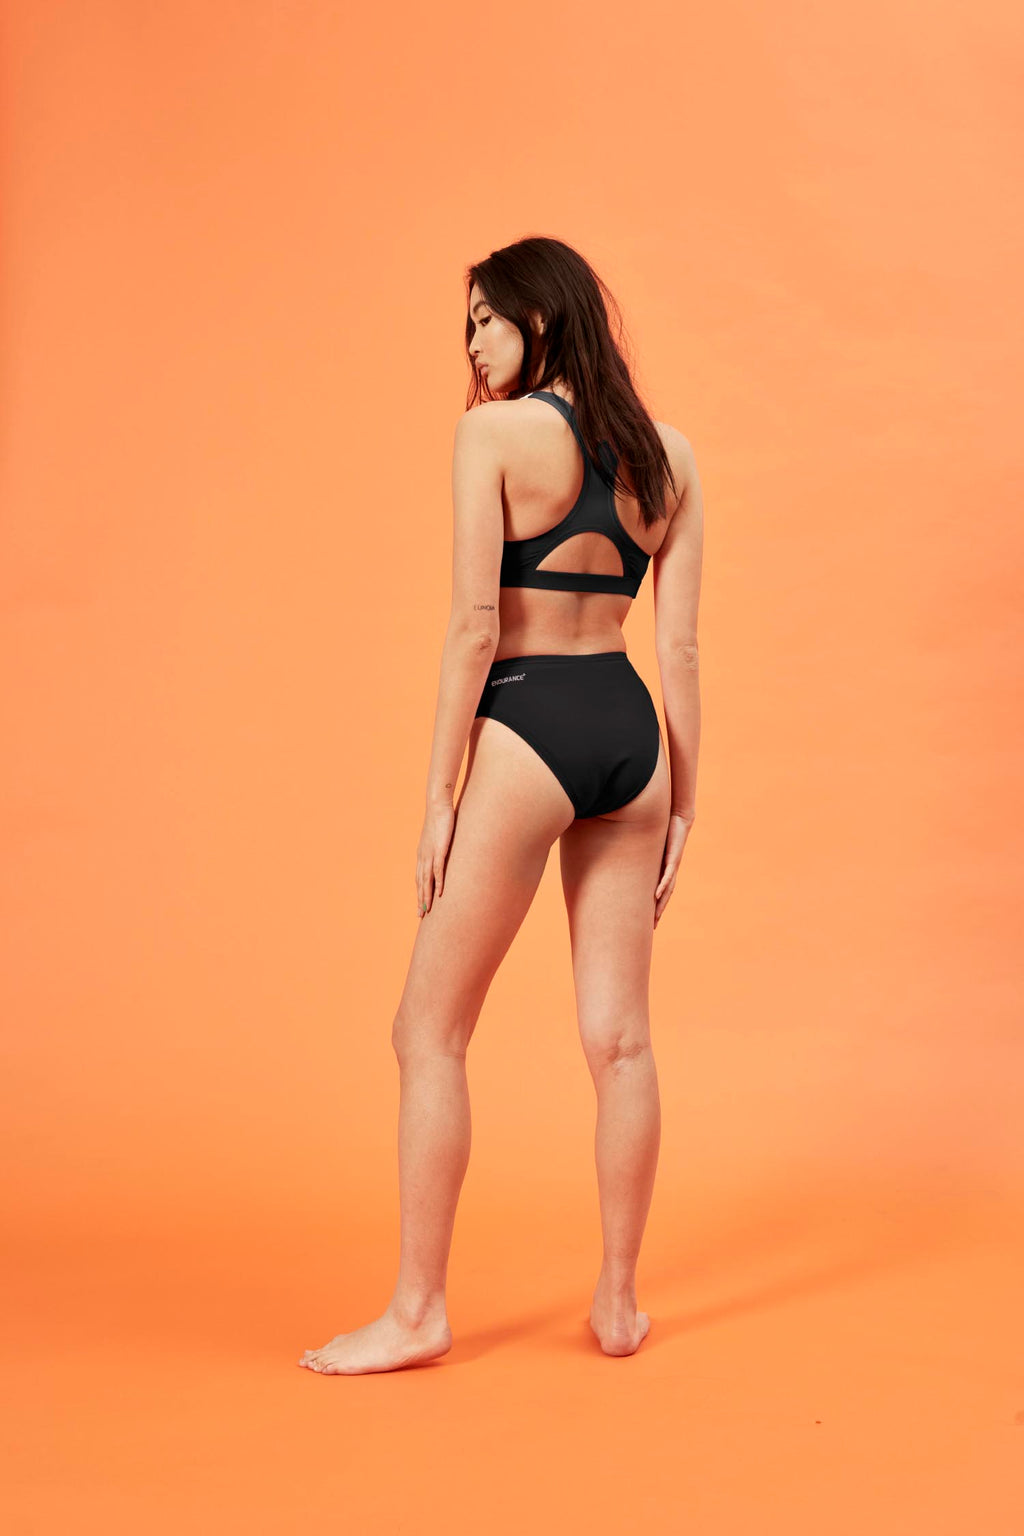 HoH x Speedo Black and White 'HOH' Swim Set